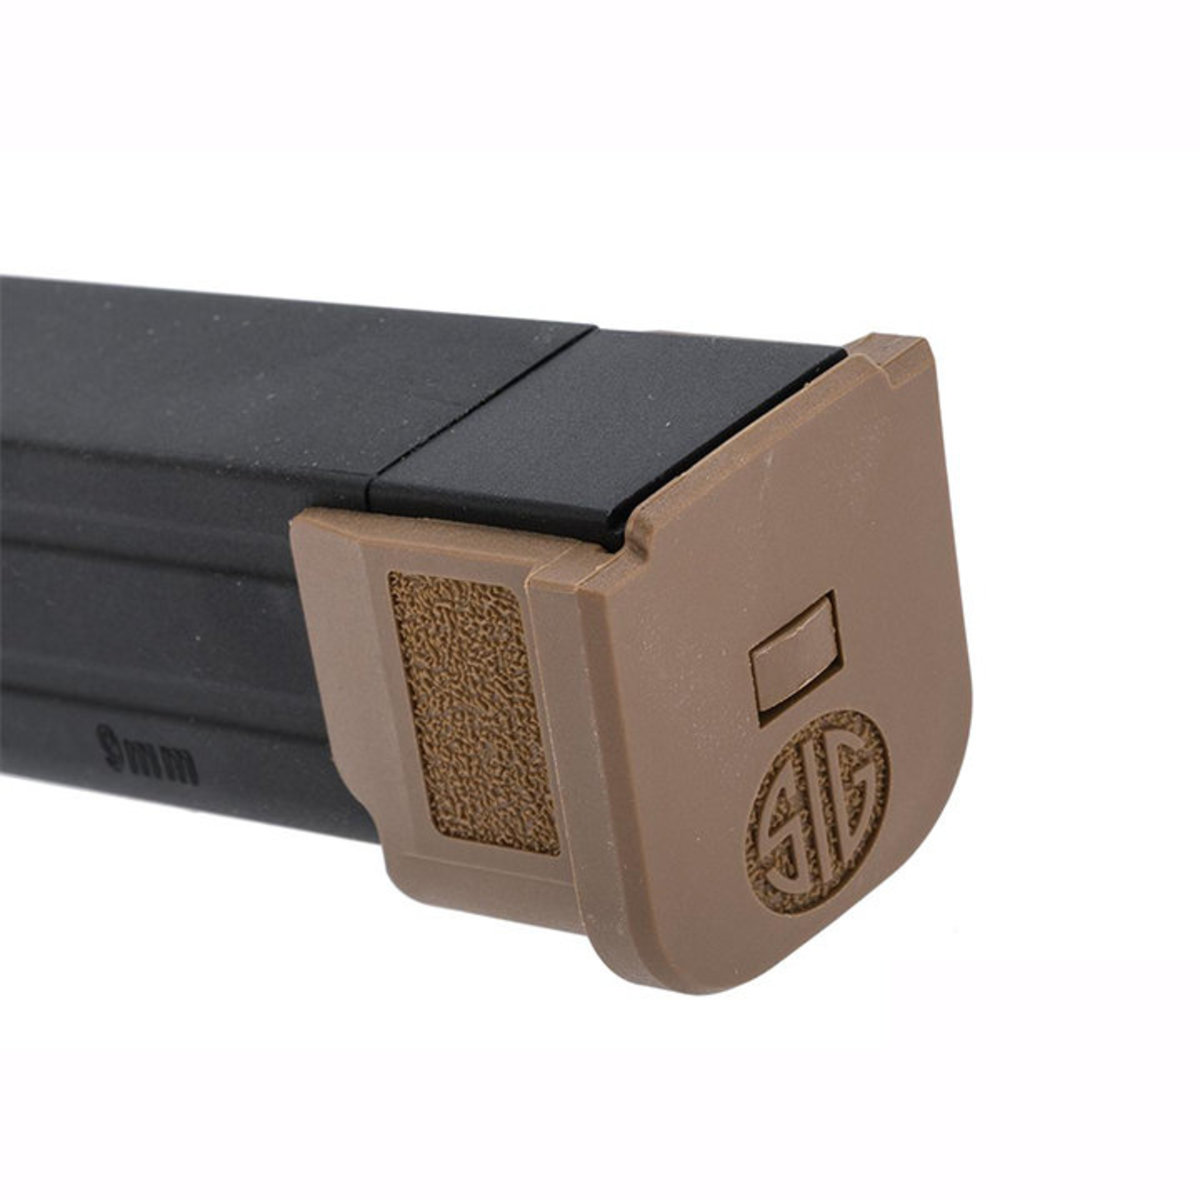 View larger image of Sig Sauer 21rd ProForce P320 M17 GBB Airsoft Magazine